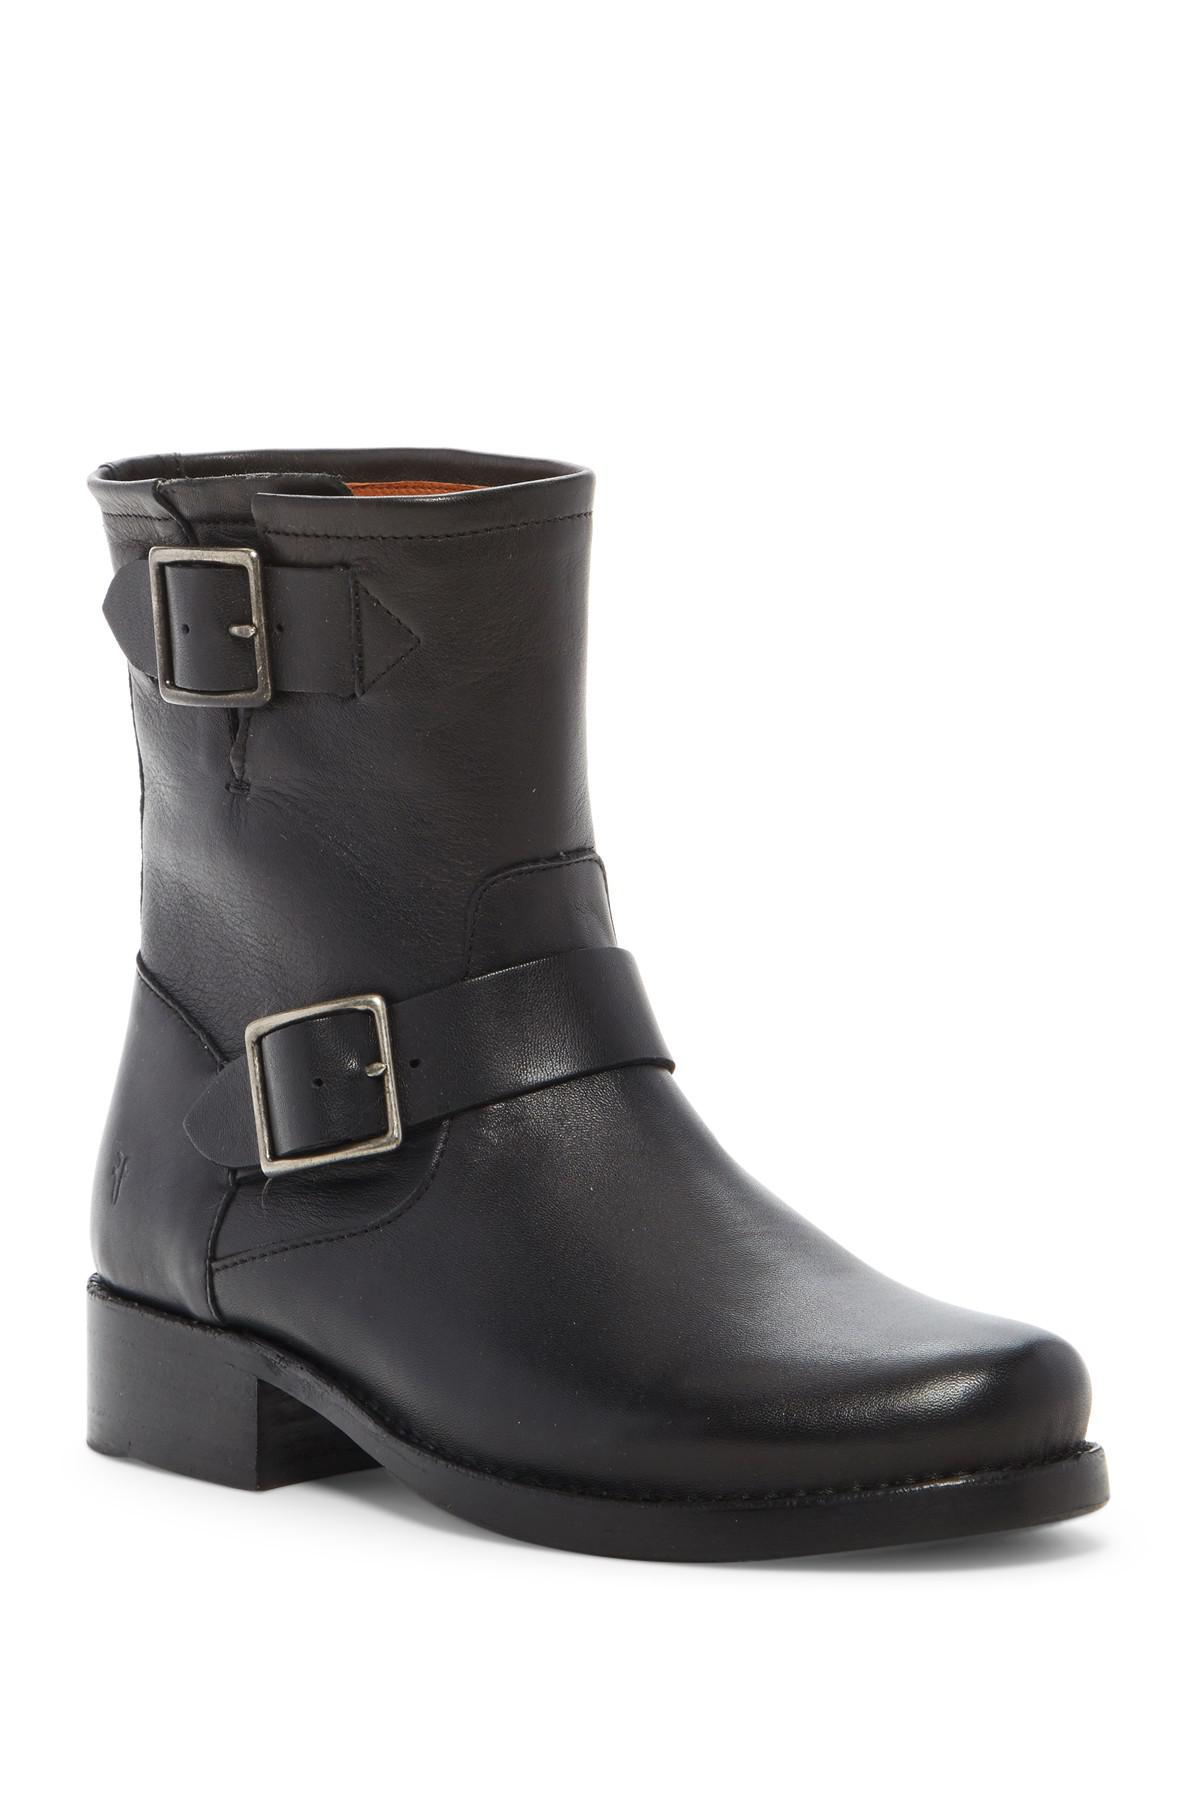 Lyst Frye Vicky Engineer Leather Boot In Black